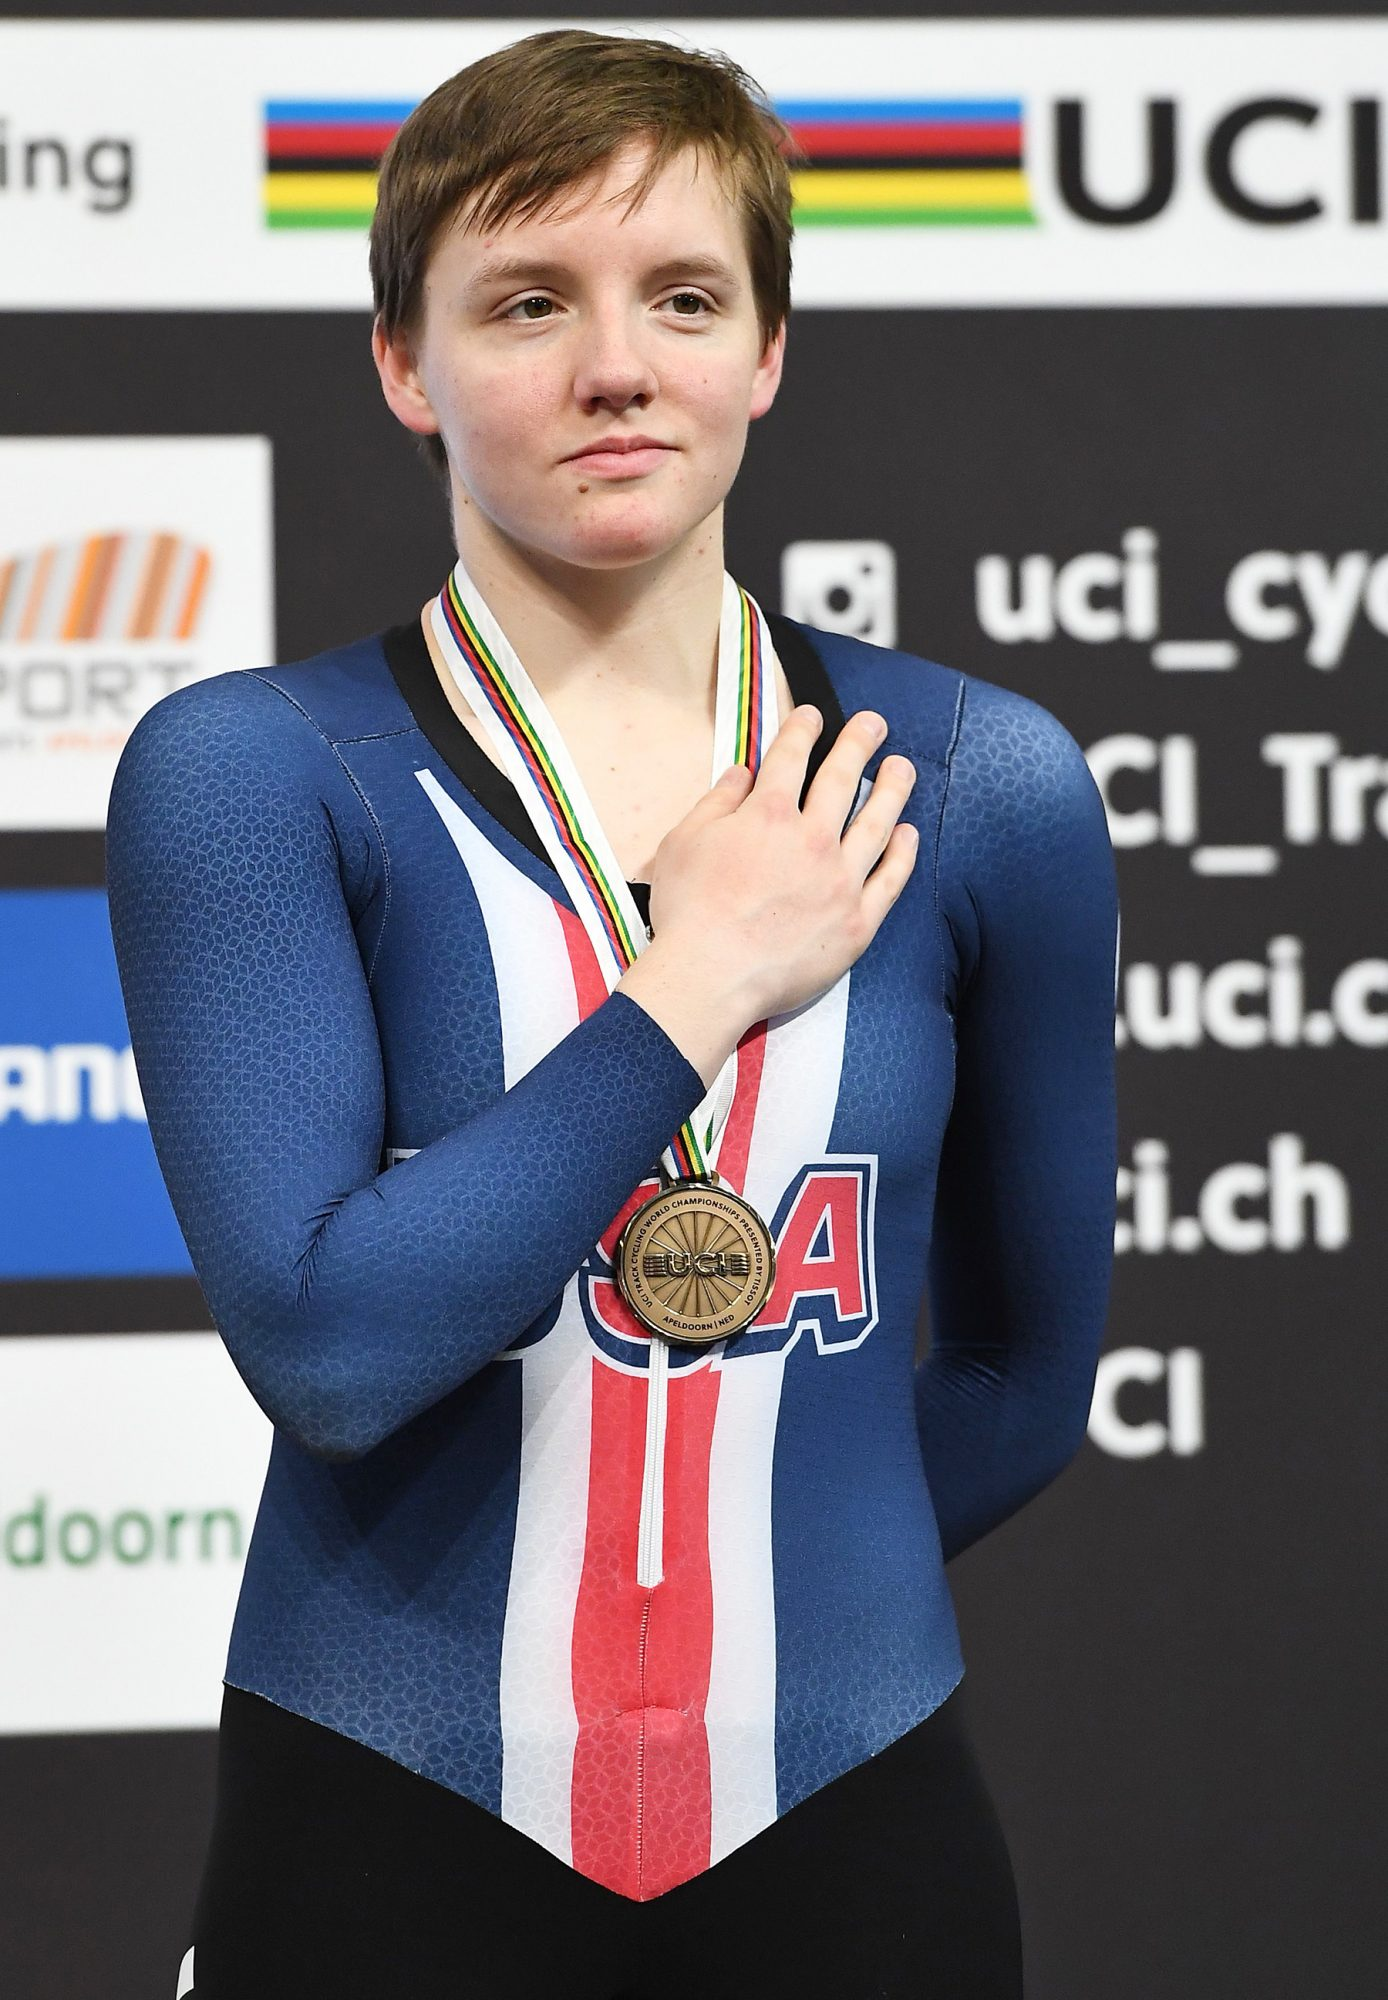 Family of Olympic Cyclist, 23, Who Died by Suicide Speaks Out: She Was 'Tortured Mentally'